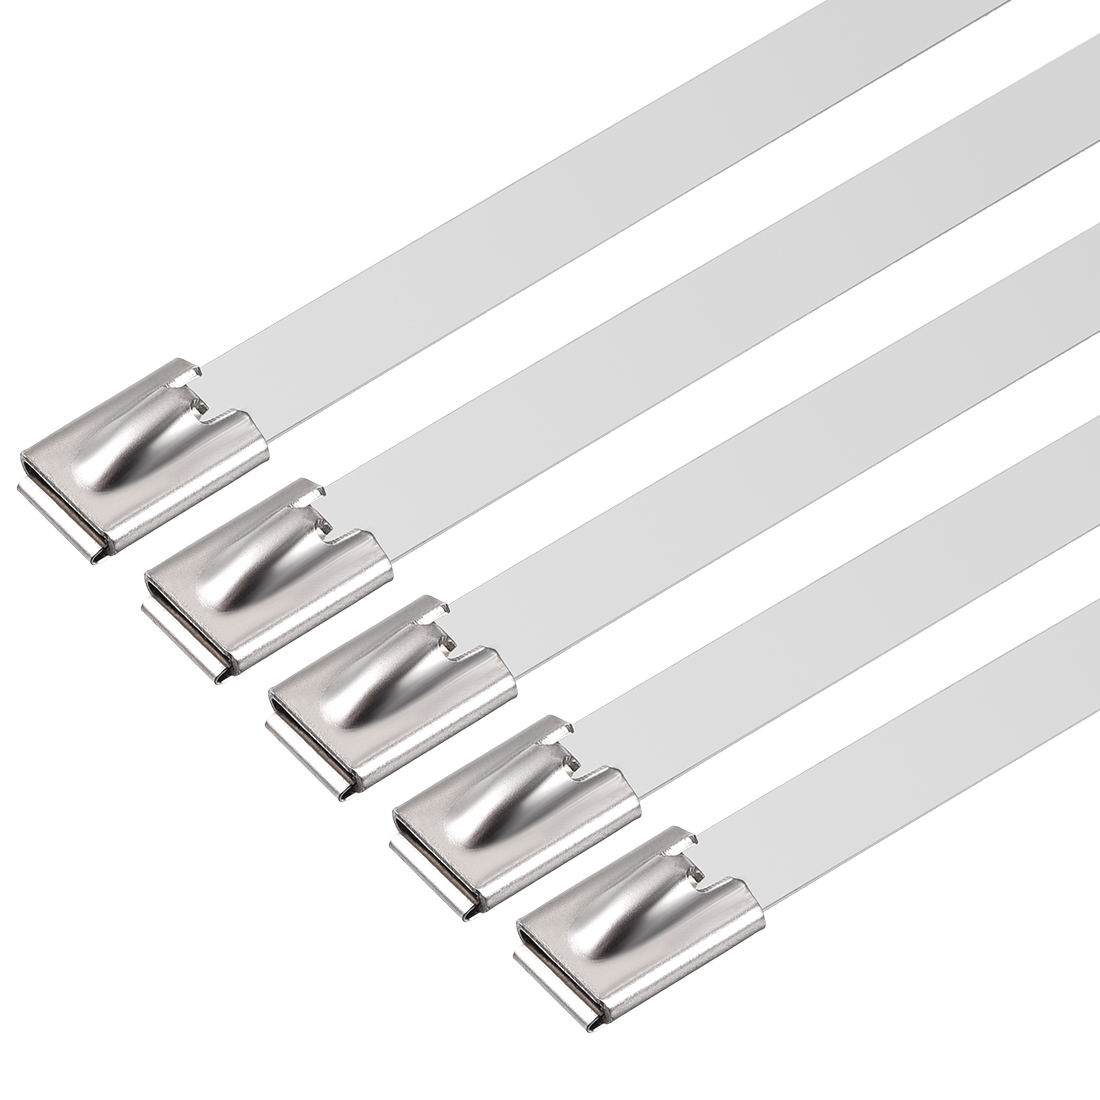 35 Inch Stainless Steel Cable Zip Ties 0.4 Inch Width Metal Exhaust Wrap 15pcs